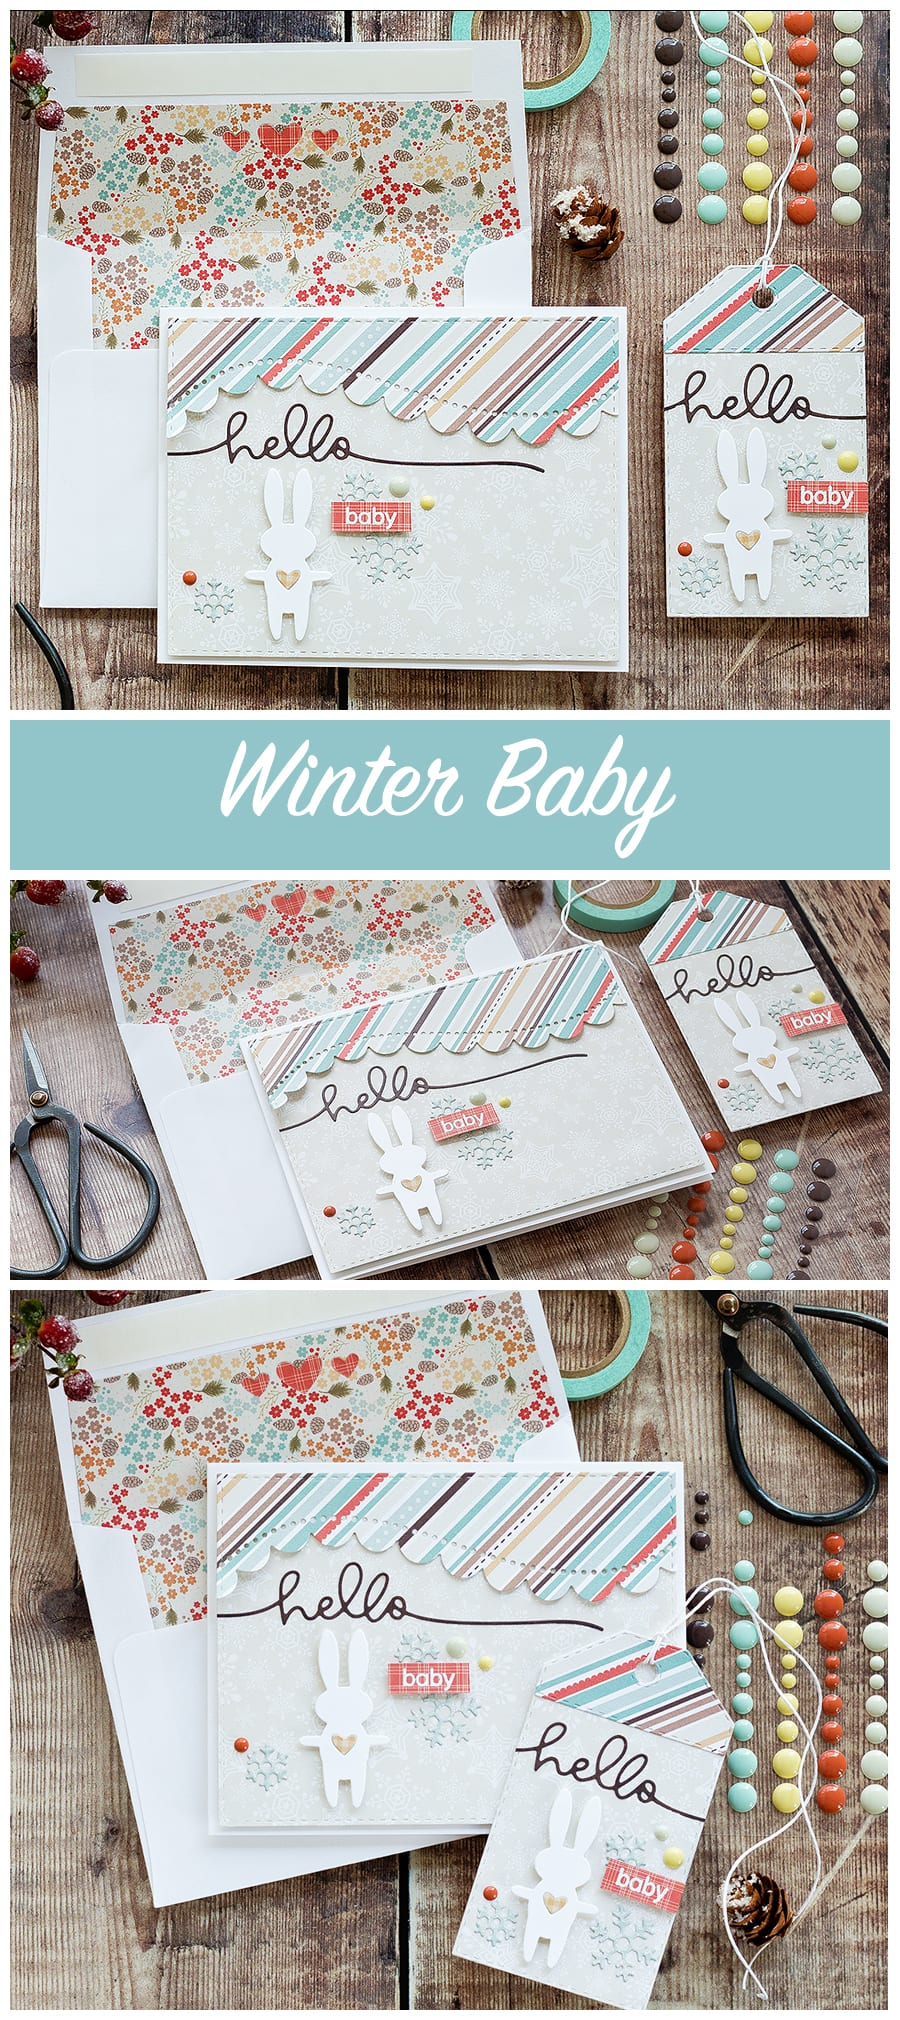 Winter baby card from Debby Hughes. Find out more by clicking on the following link: https://limedoodledesign.com/2016/12/winter-baby-diecember-blog-hop/